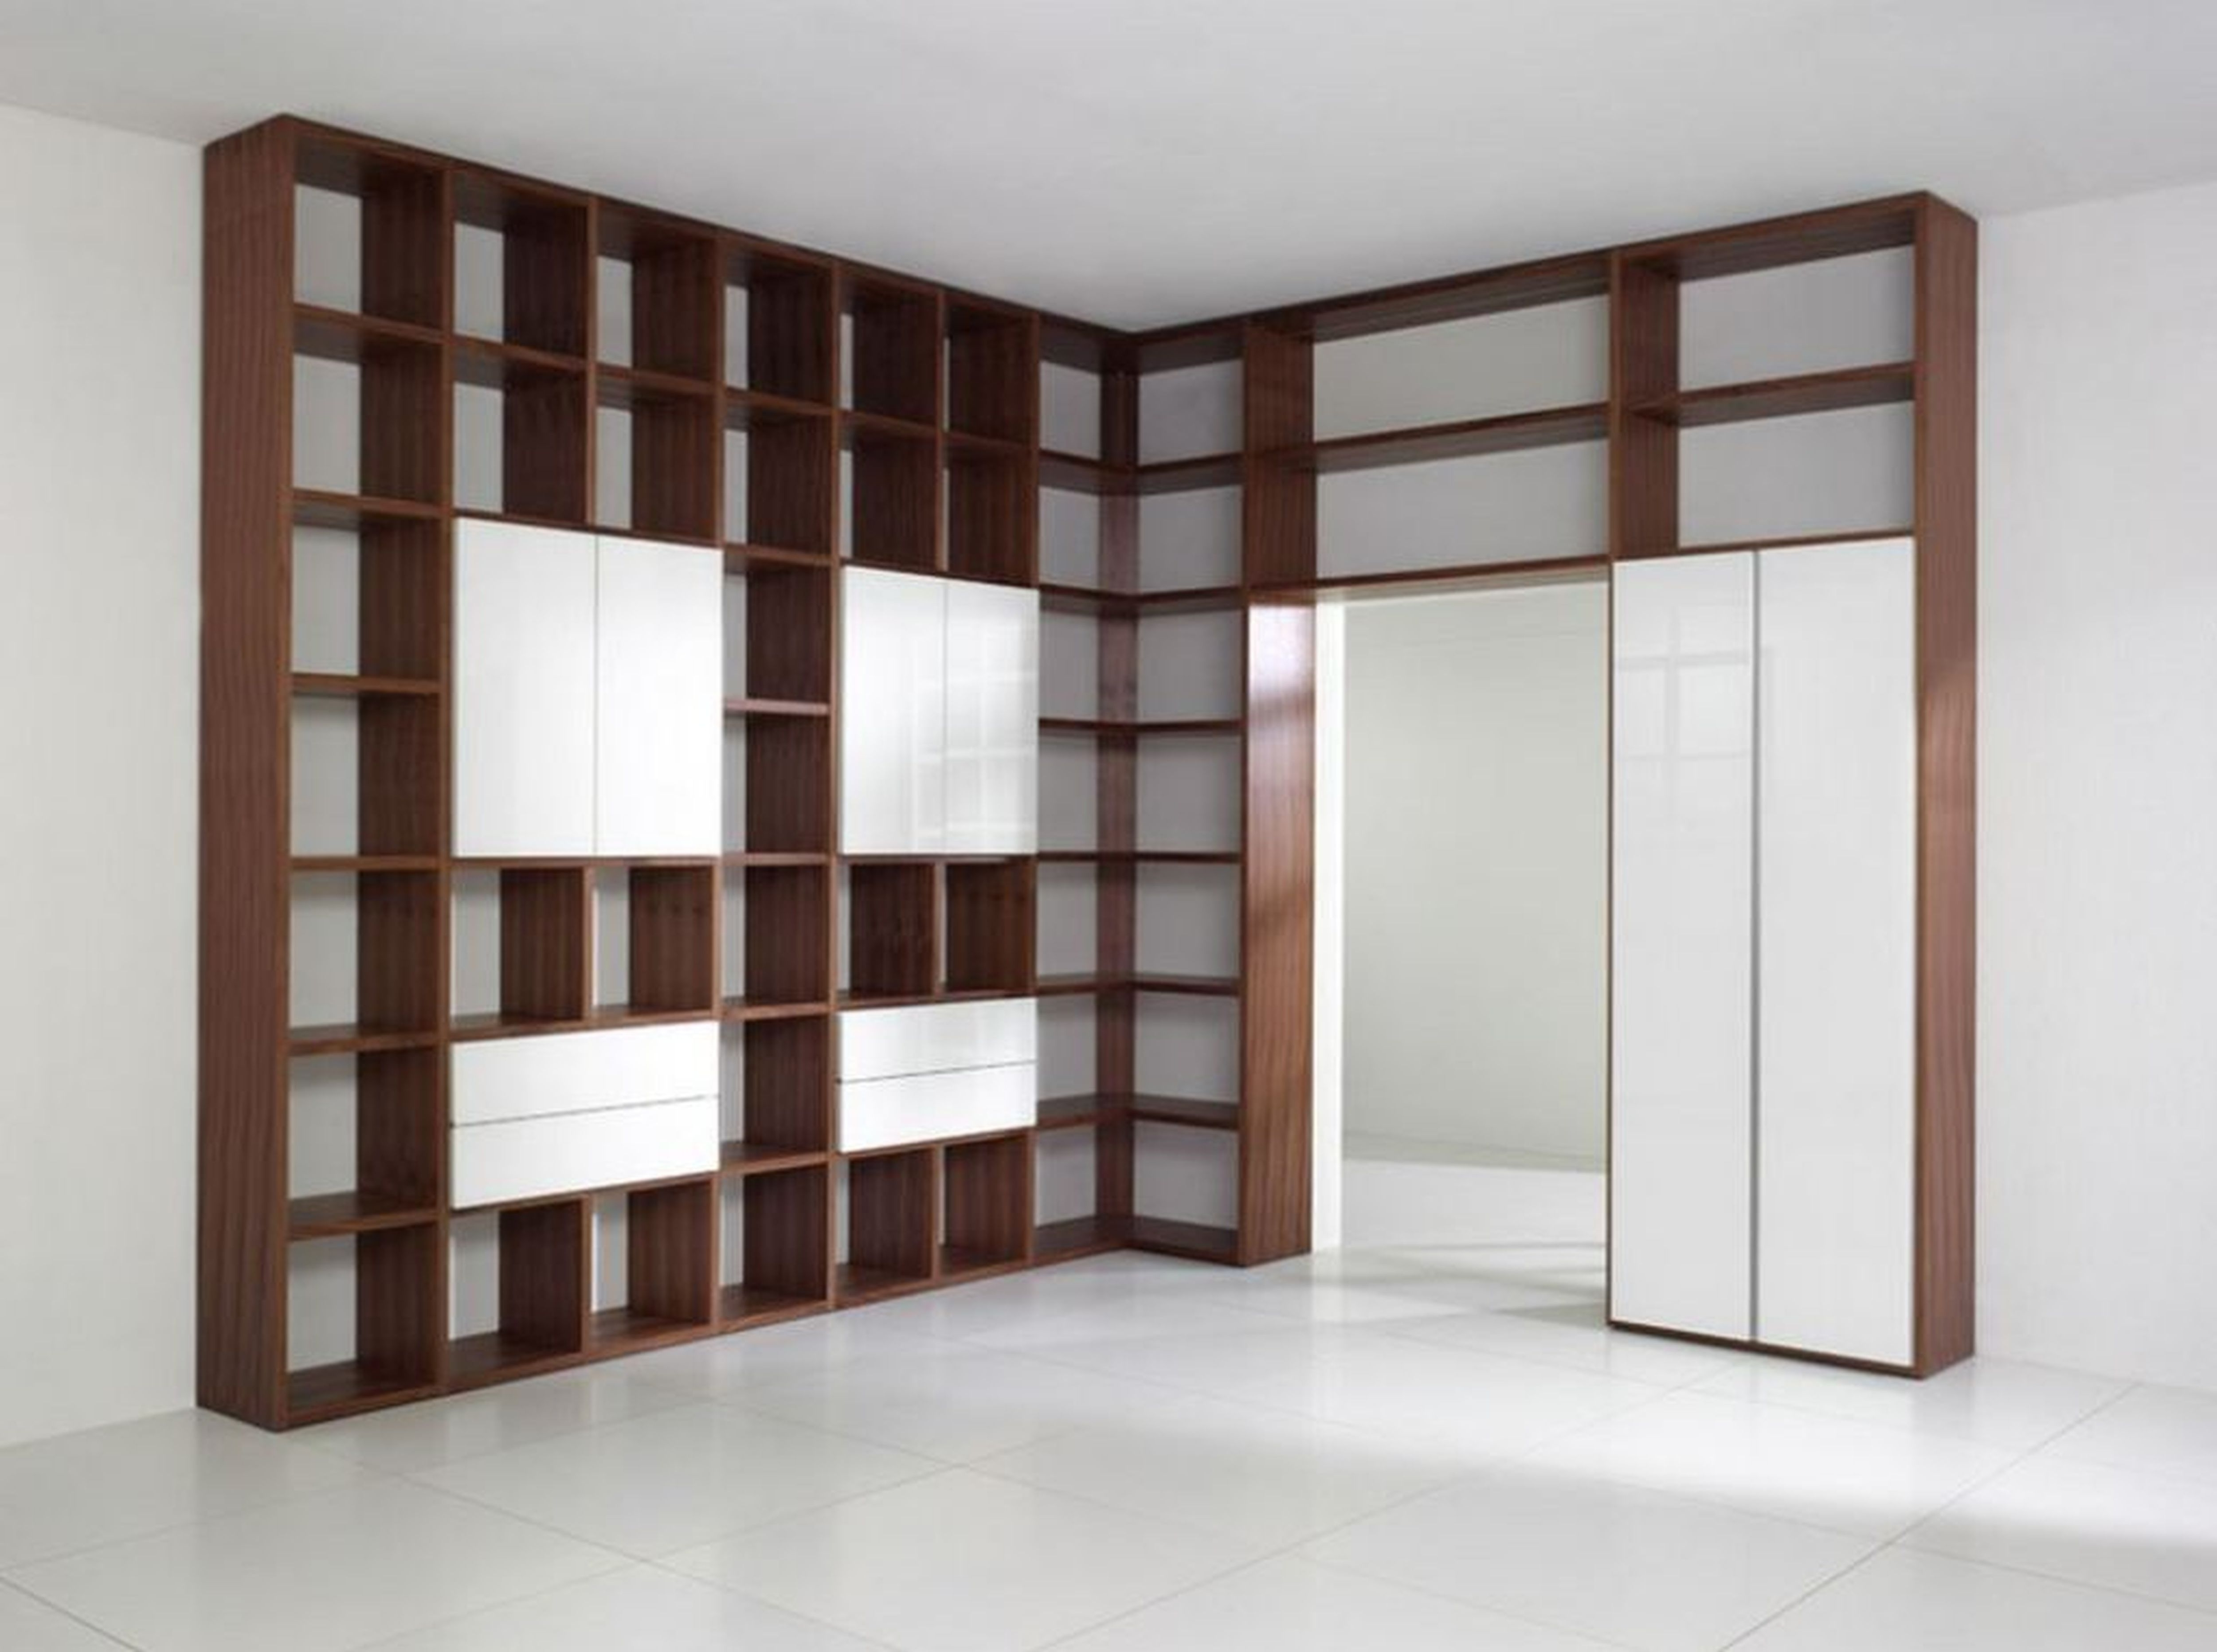 Astounding White Wooden Library Shelves Combined With Brown Ladder Pertaining To Current Classic Bookshelves Design (View 12 of 15)